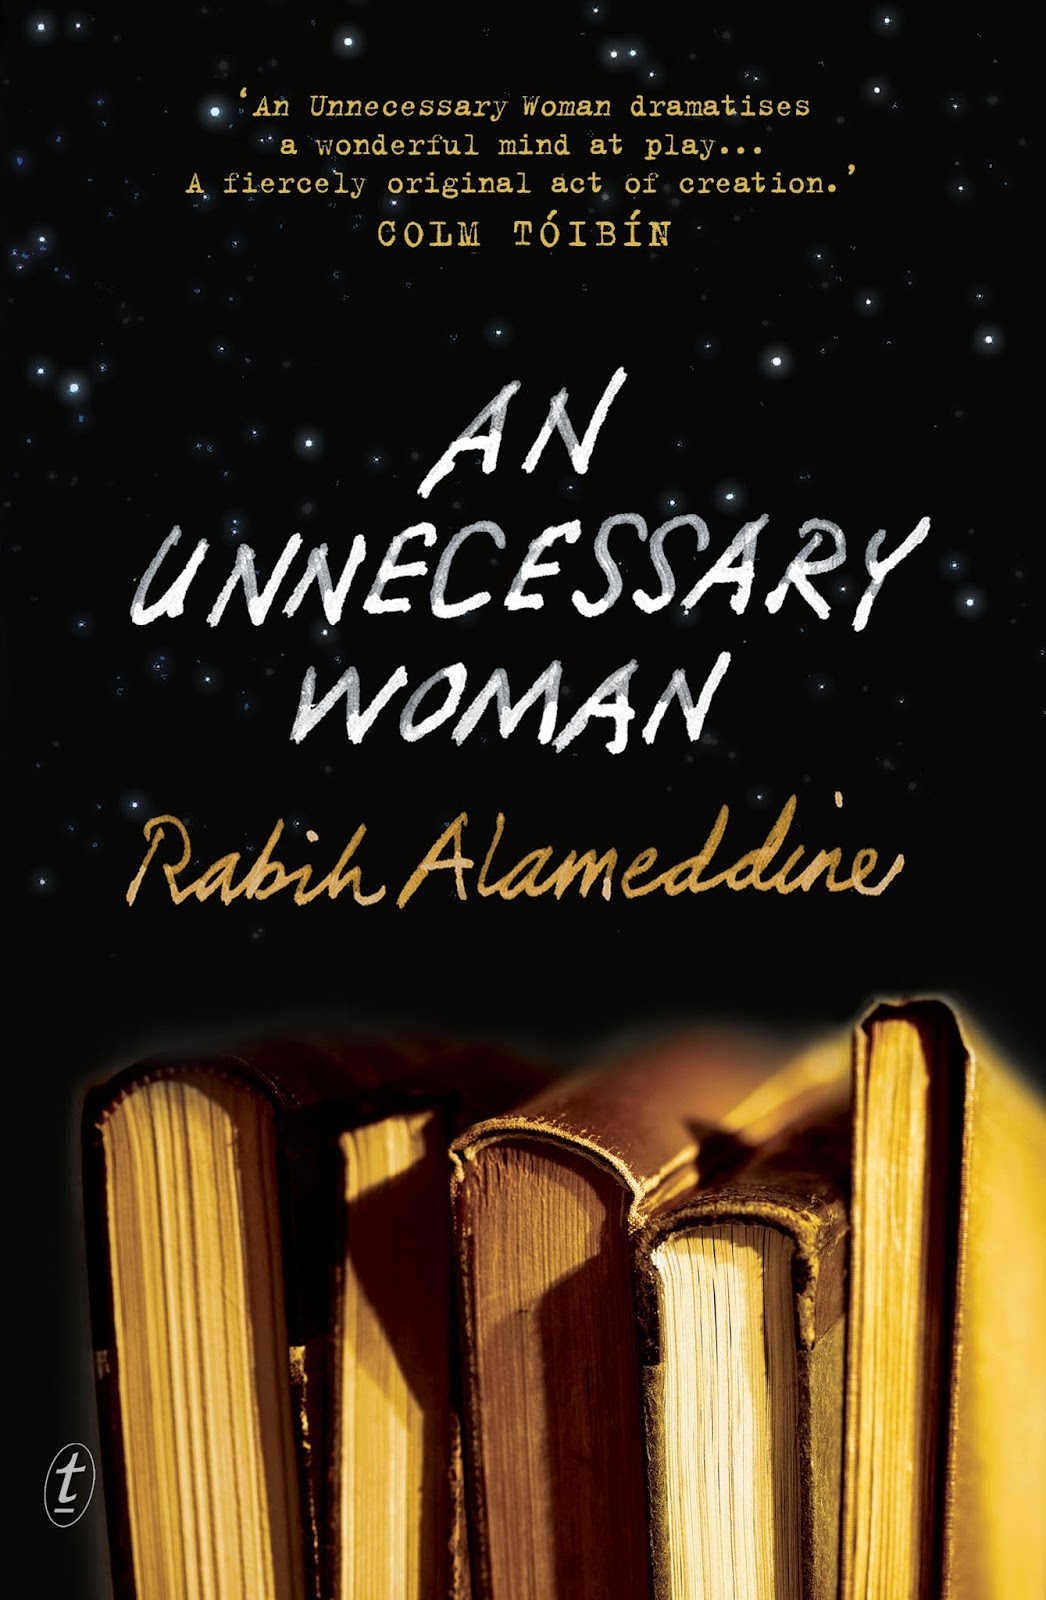 http://discover.halifaxpubliclibraries.ca/?q=title:an%20unnecessary%20woman